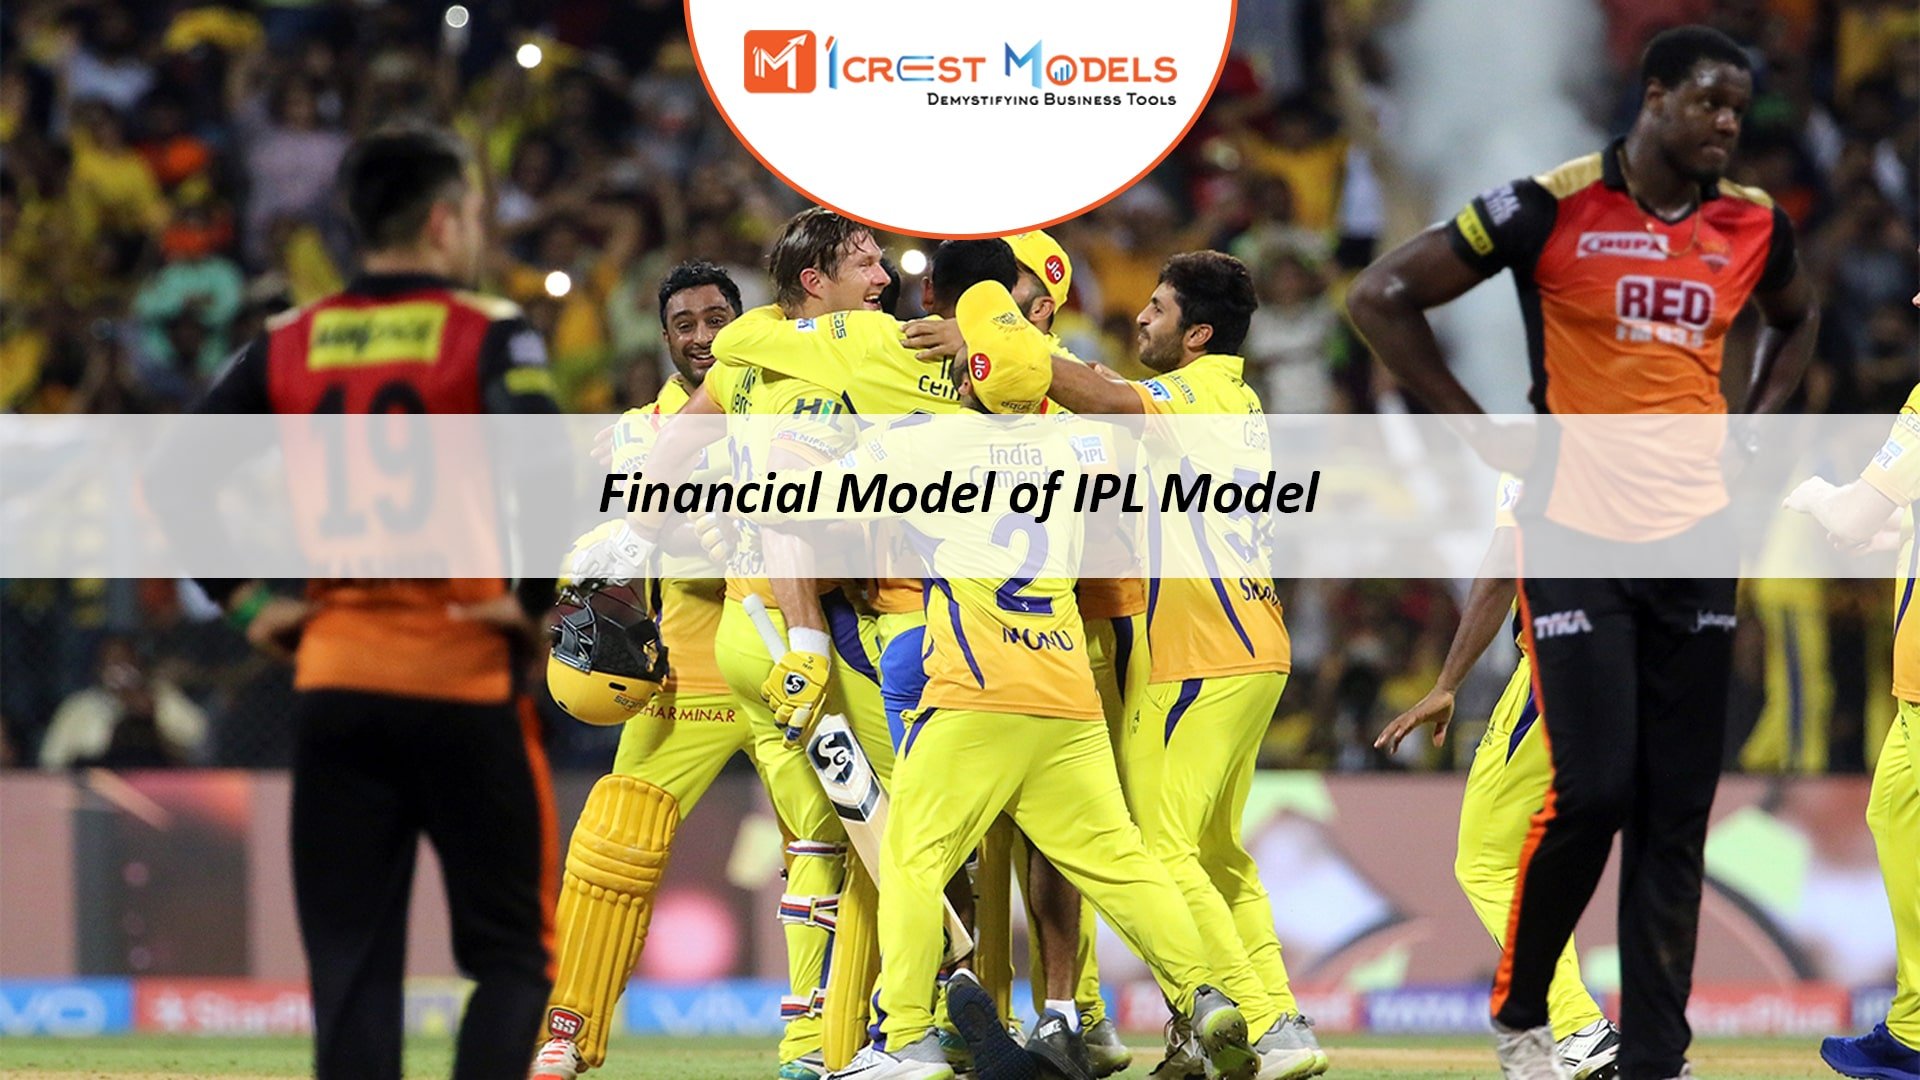 Financial Model of Indian Premier League (IPL)